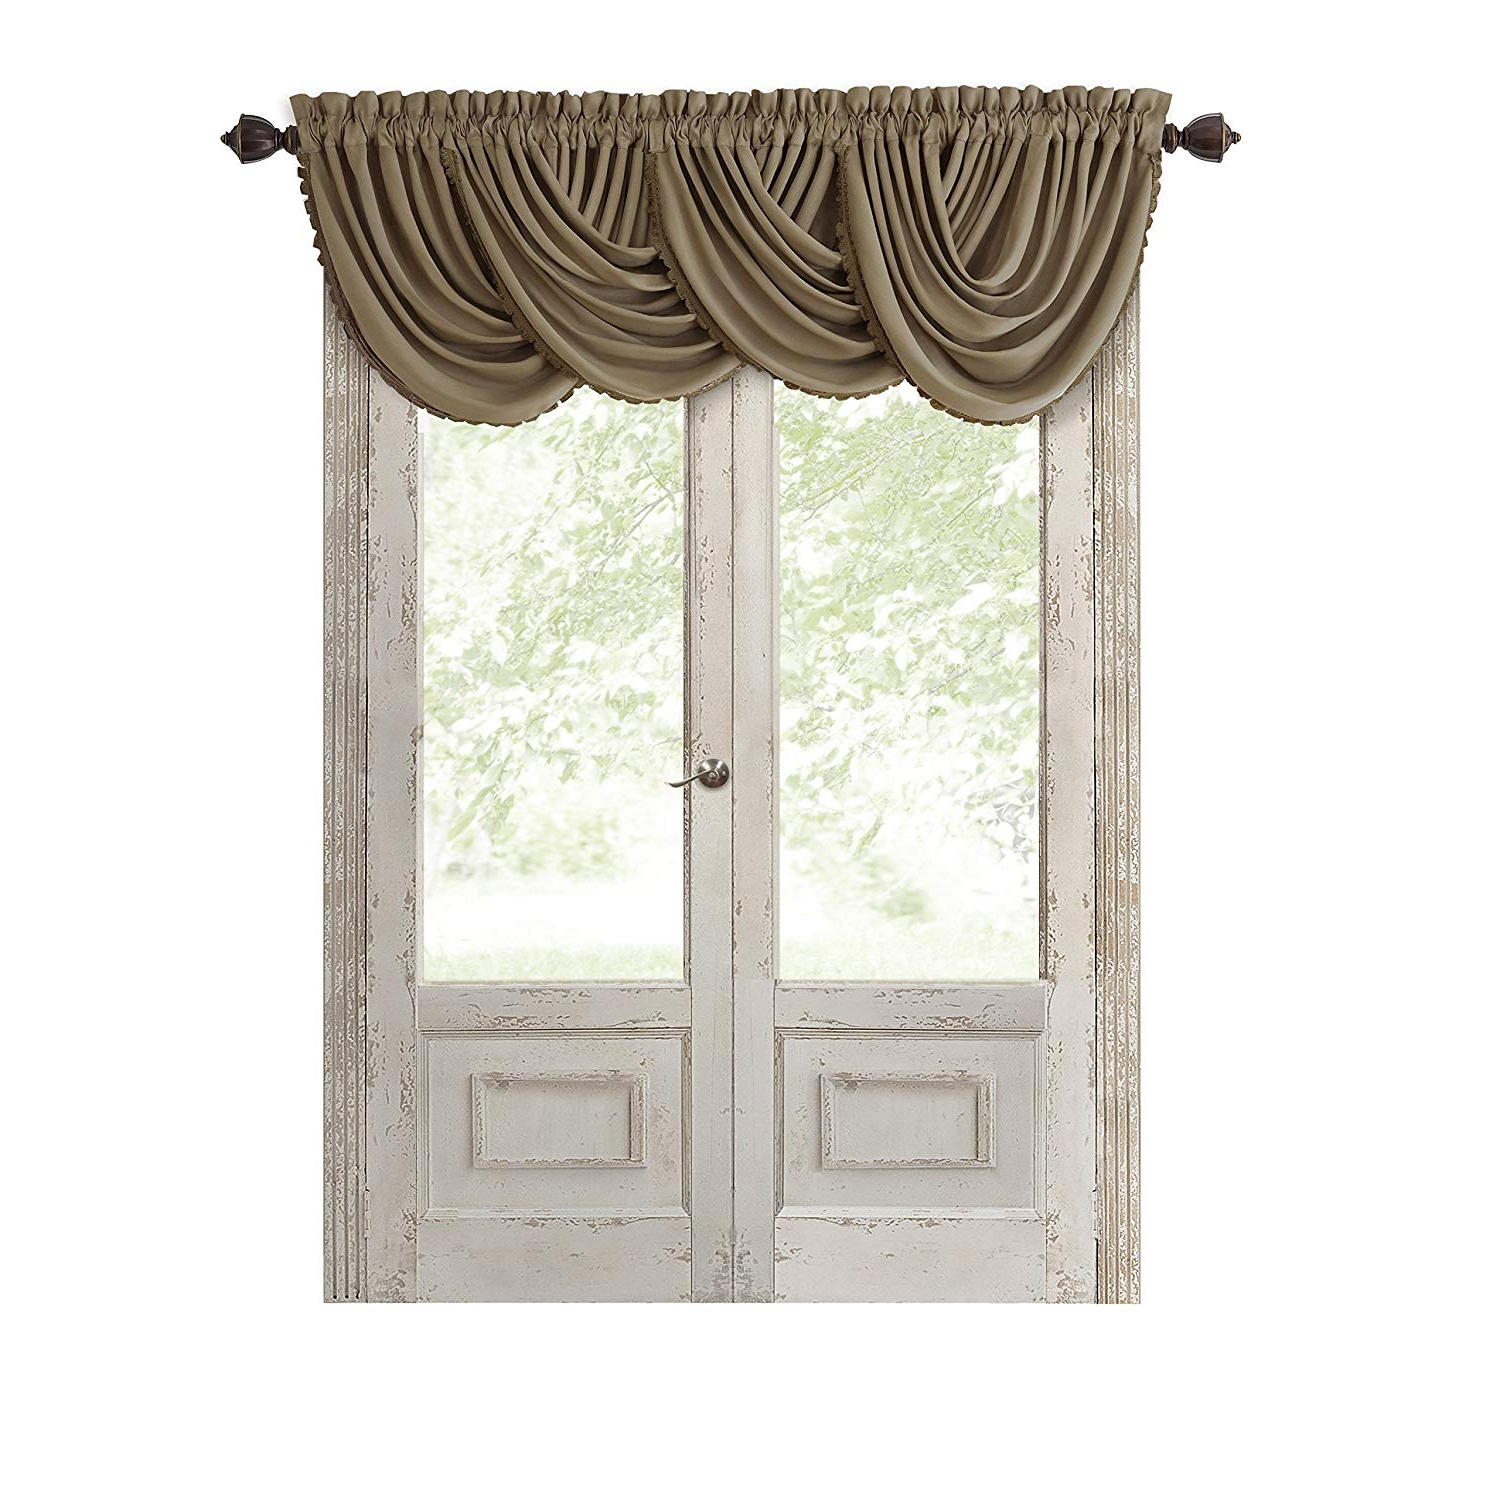 """2021 Elrene Home Fashions All Seasons Energy Efficient Room Darkening Rod Pocket  Window Panel, 52"""" X 36"""" (1 Valance), Gold For All Seasons Blackout Window Curtains (View 3 of 20)"""